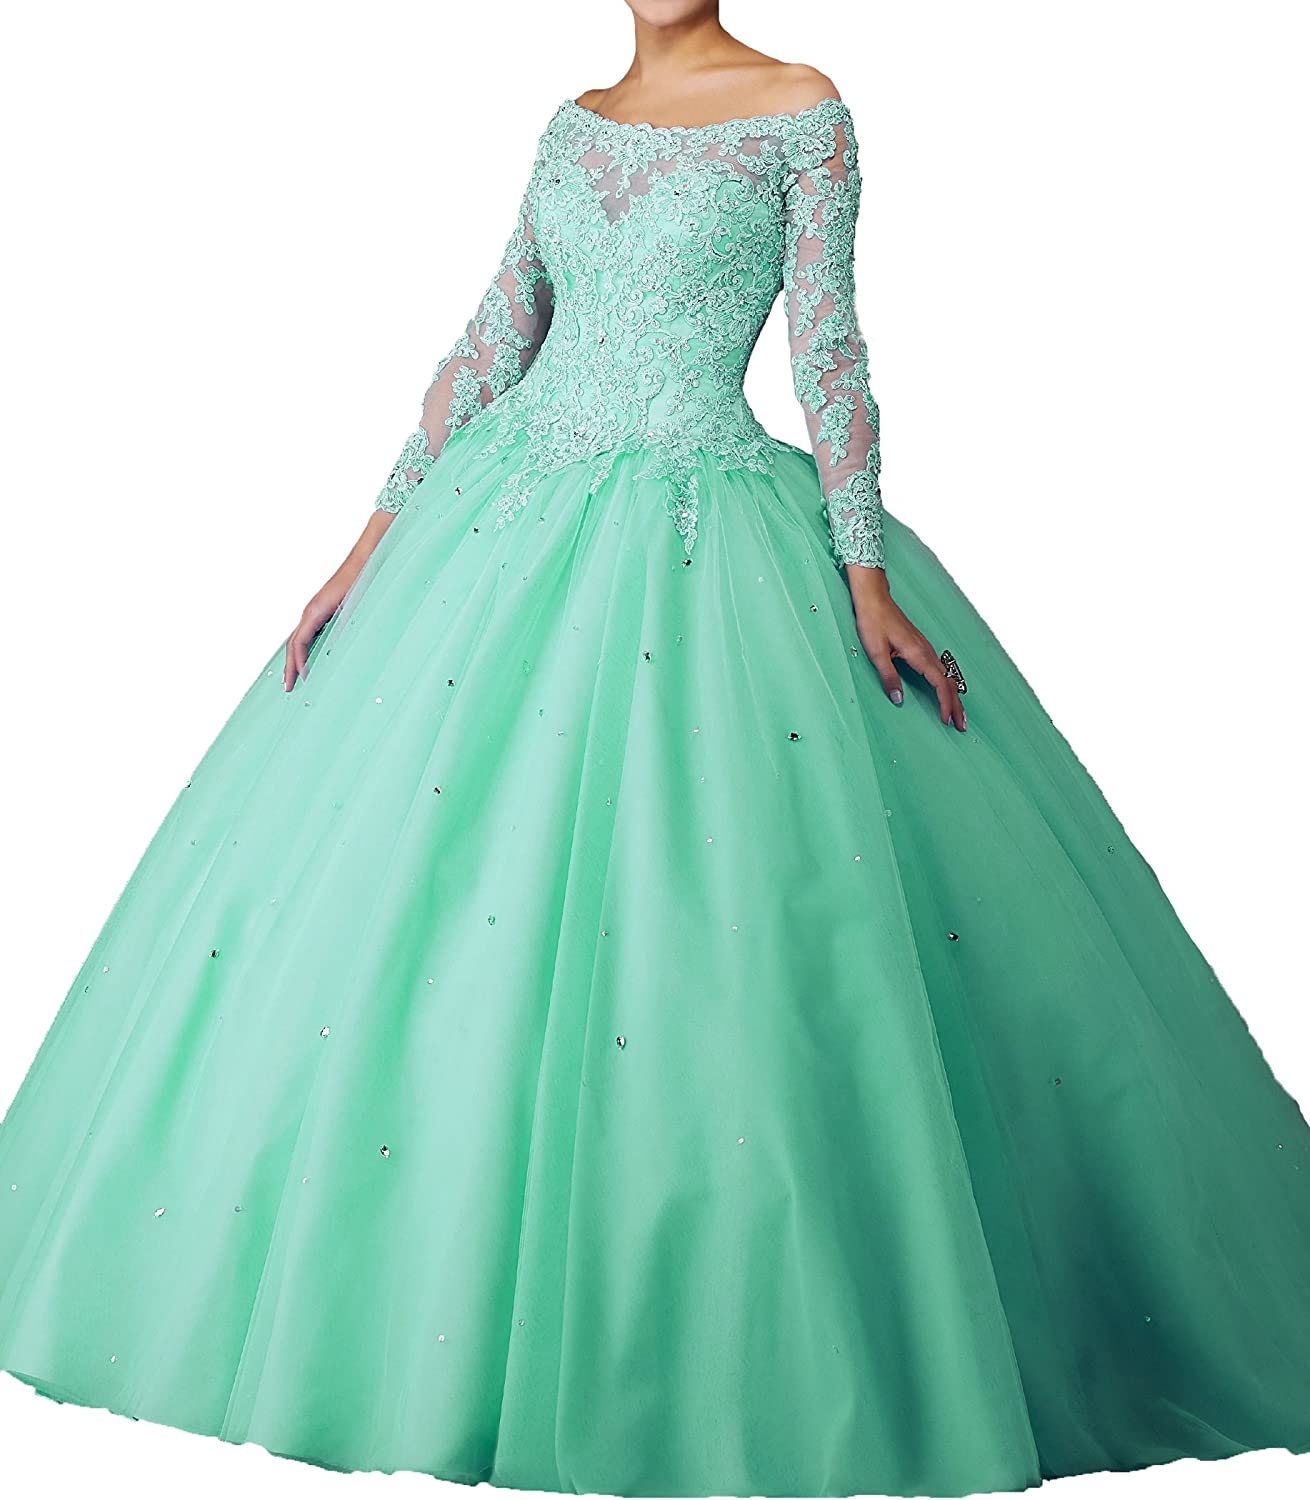 MFandy Women Bateau Boat Neck Ball Gowns Girls Long Sleeves Lace Quinceanera Dress